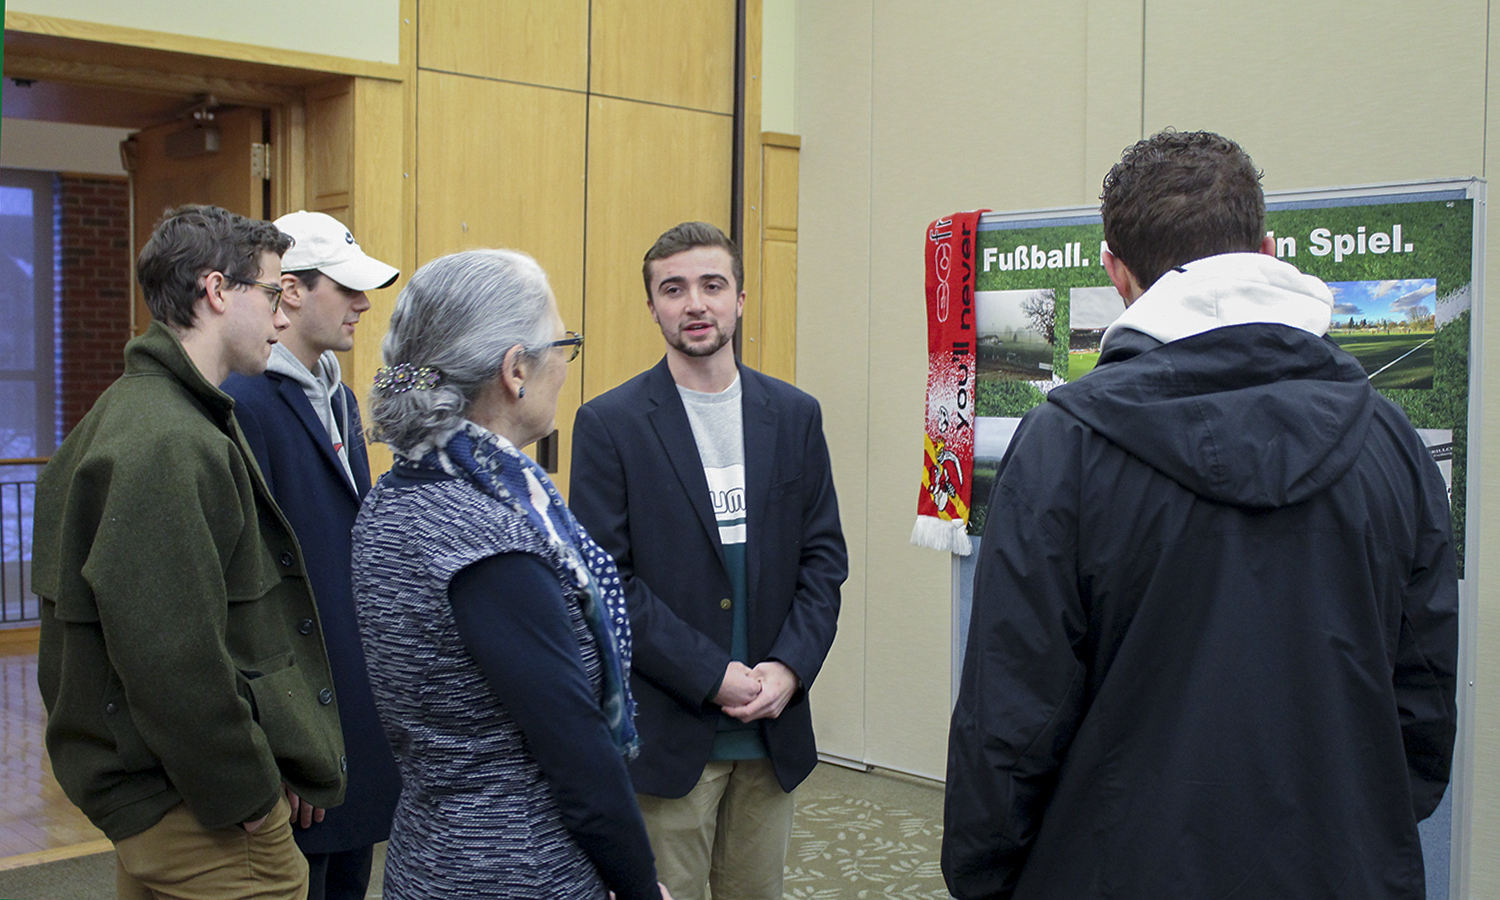 Luke Millspaugh '20 (center) speaks about his project for the Blocker Fellowship in Germany last semester.